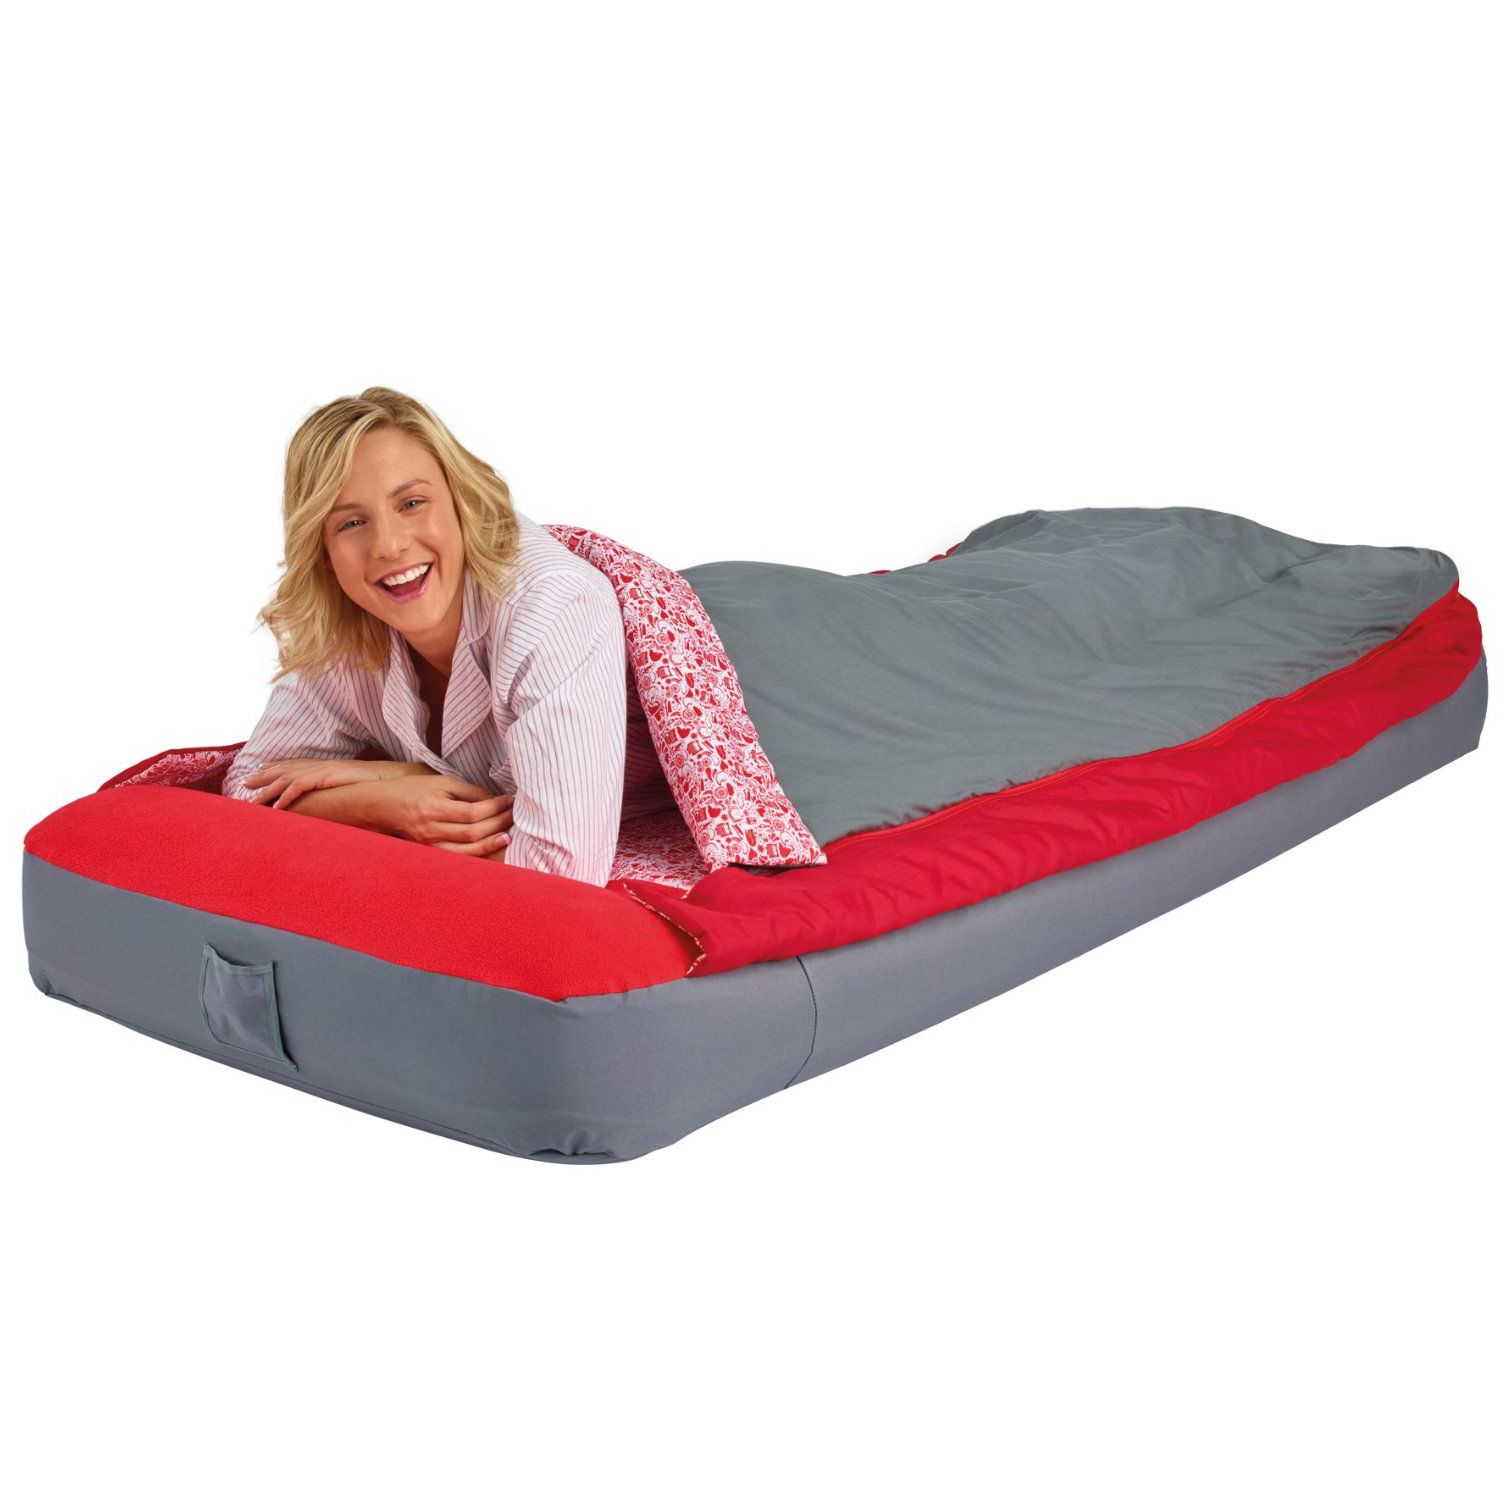 WORLDS APART DELUXE ADULT SINGLE INFLATABLE READY BED NEW